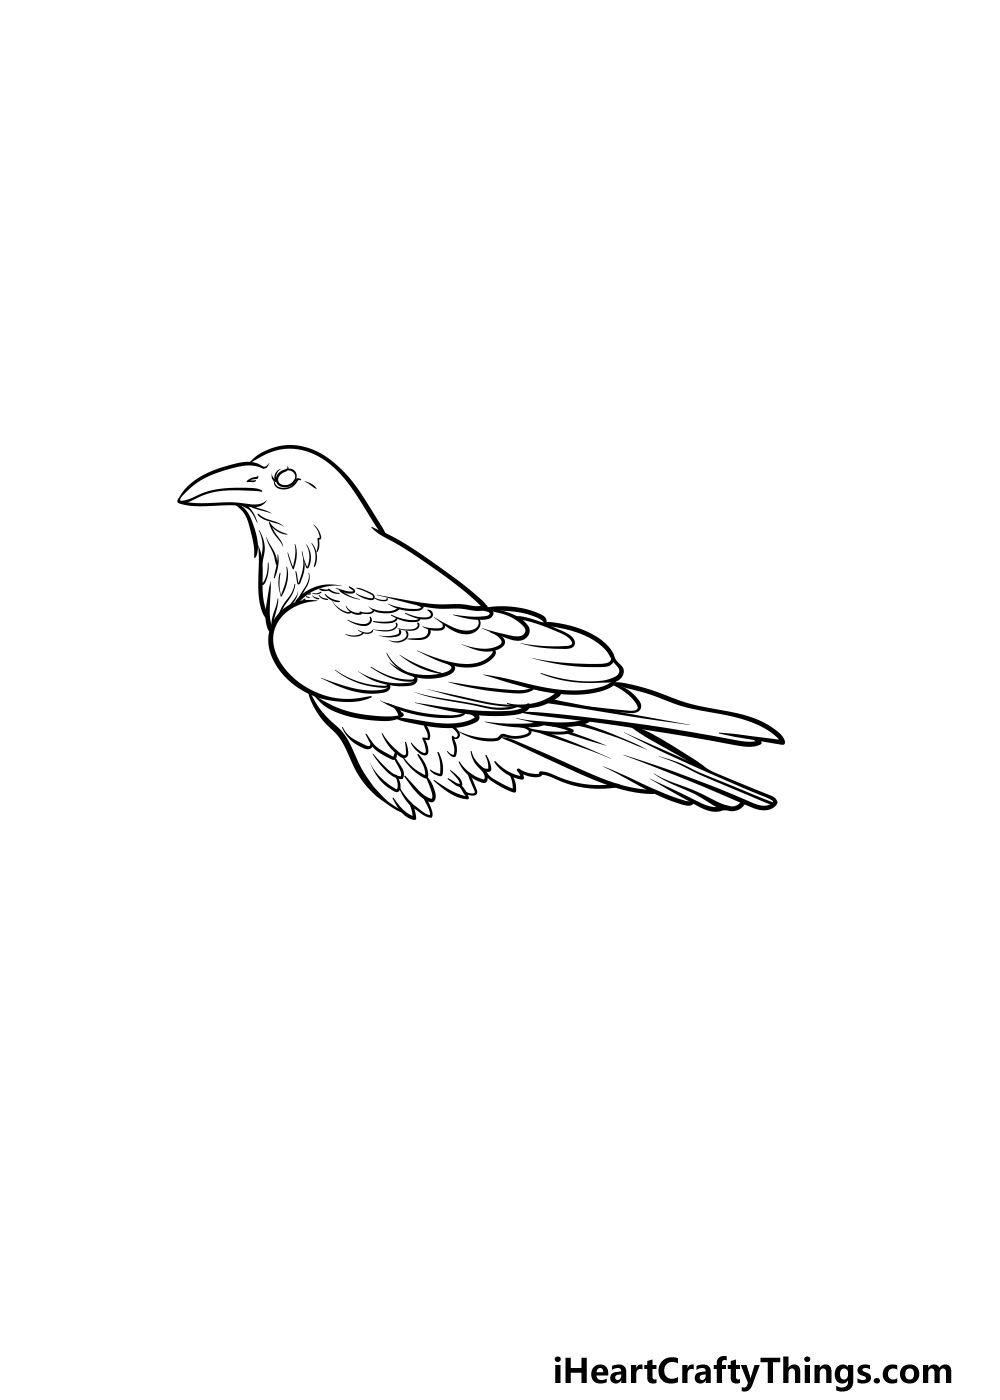 drawing a crow step 4